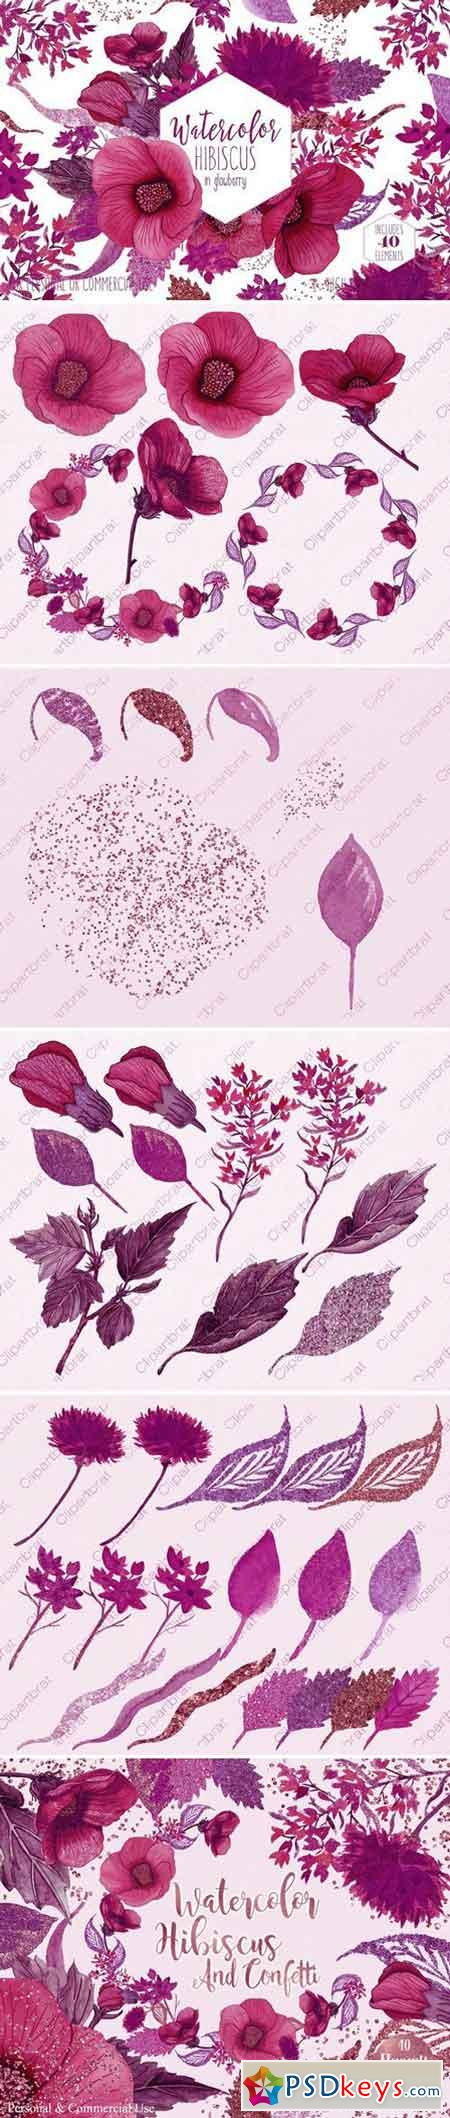 Wine Pink Tropical Floral Graphics 2186086